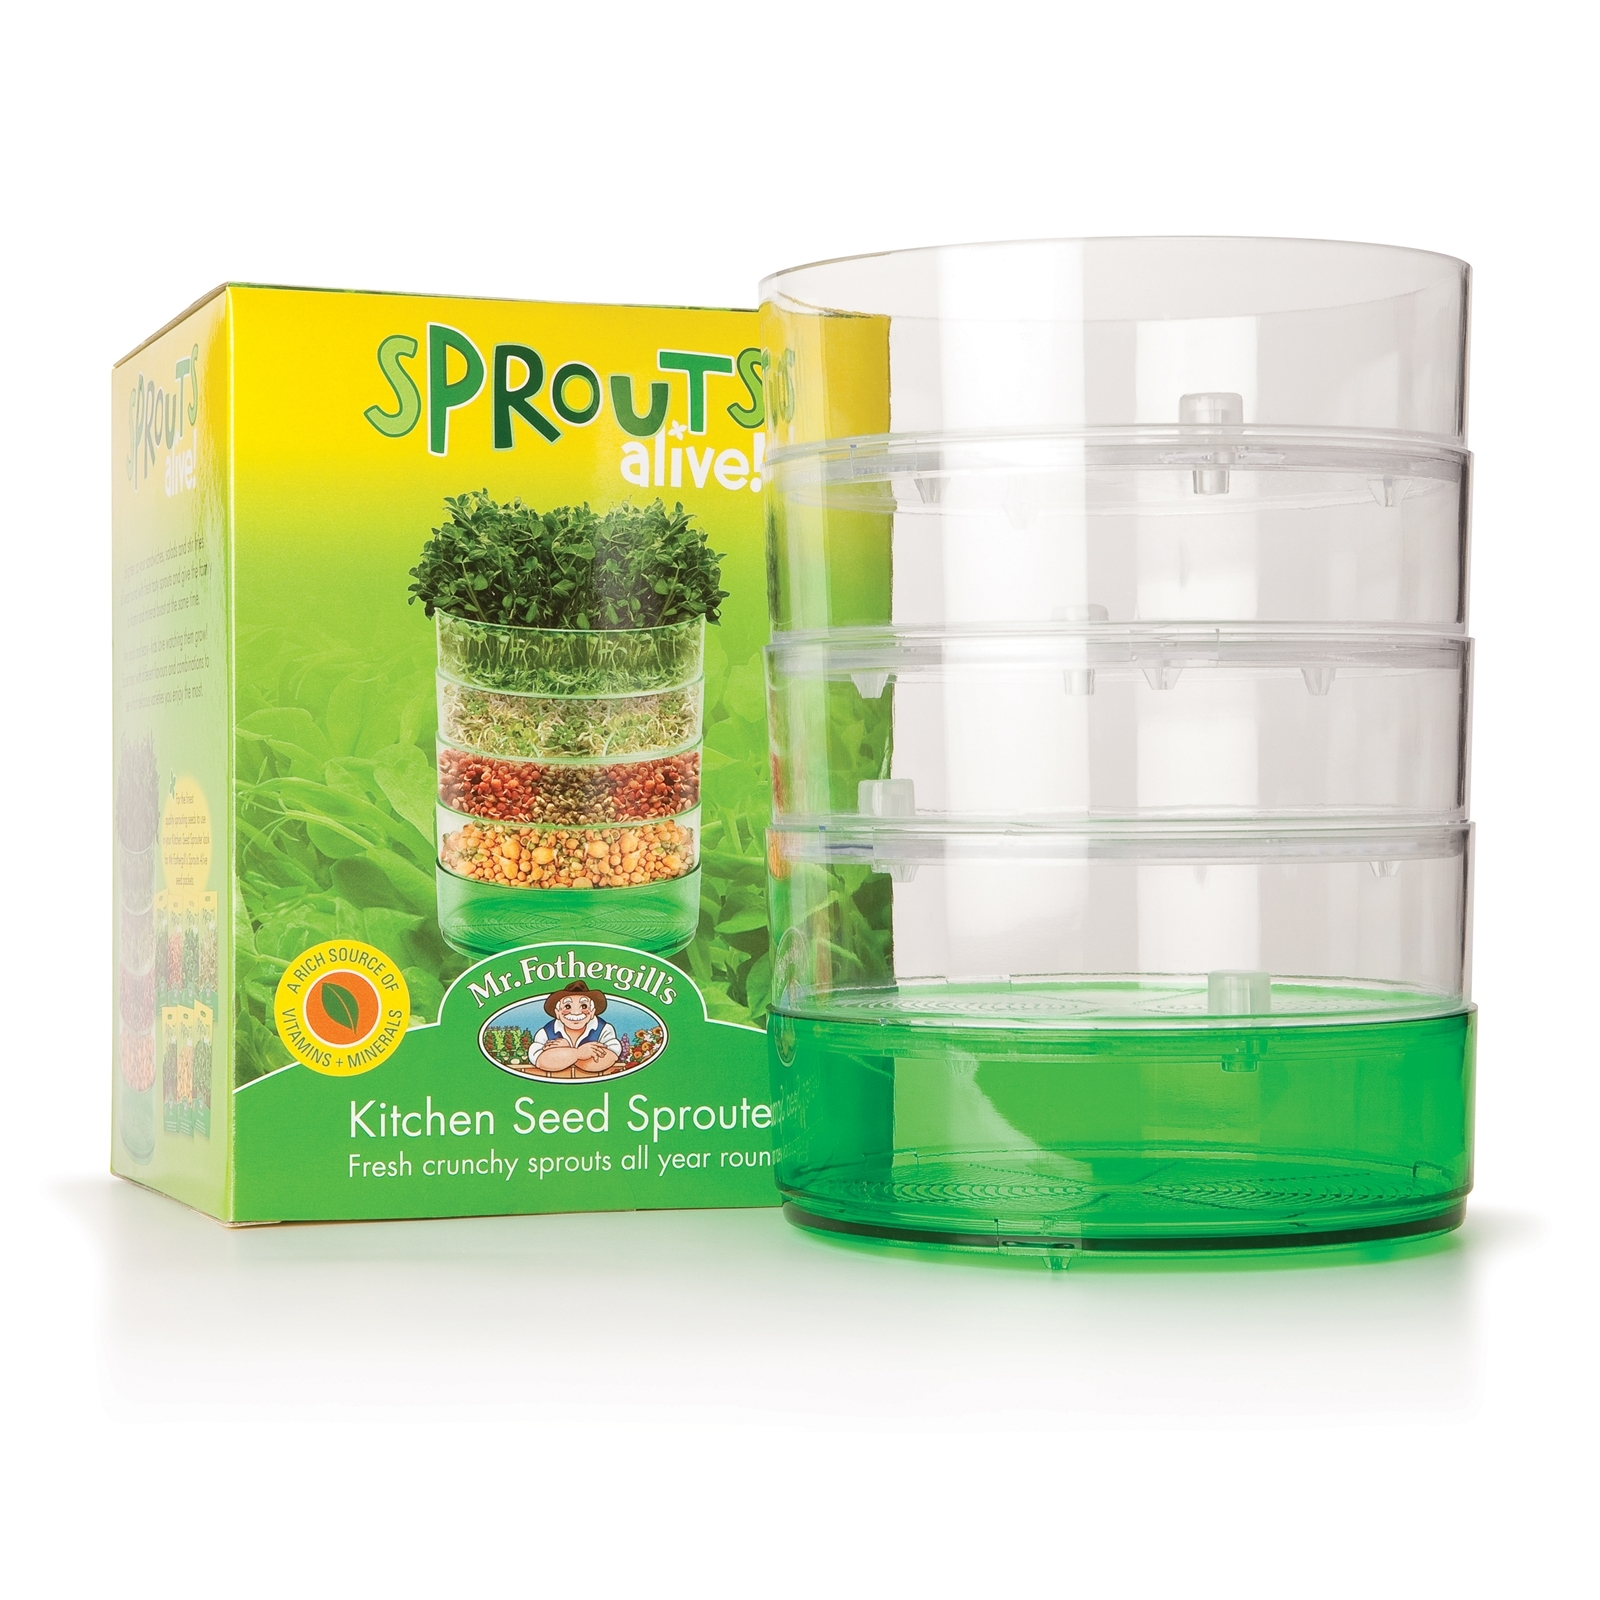 Mr Fothergill's Kitchen Seed Sprouter